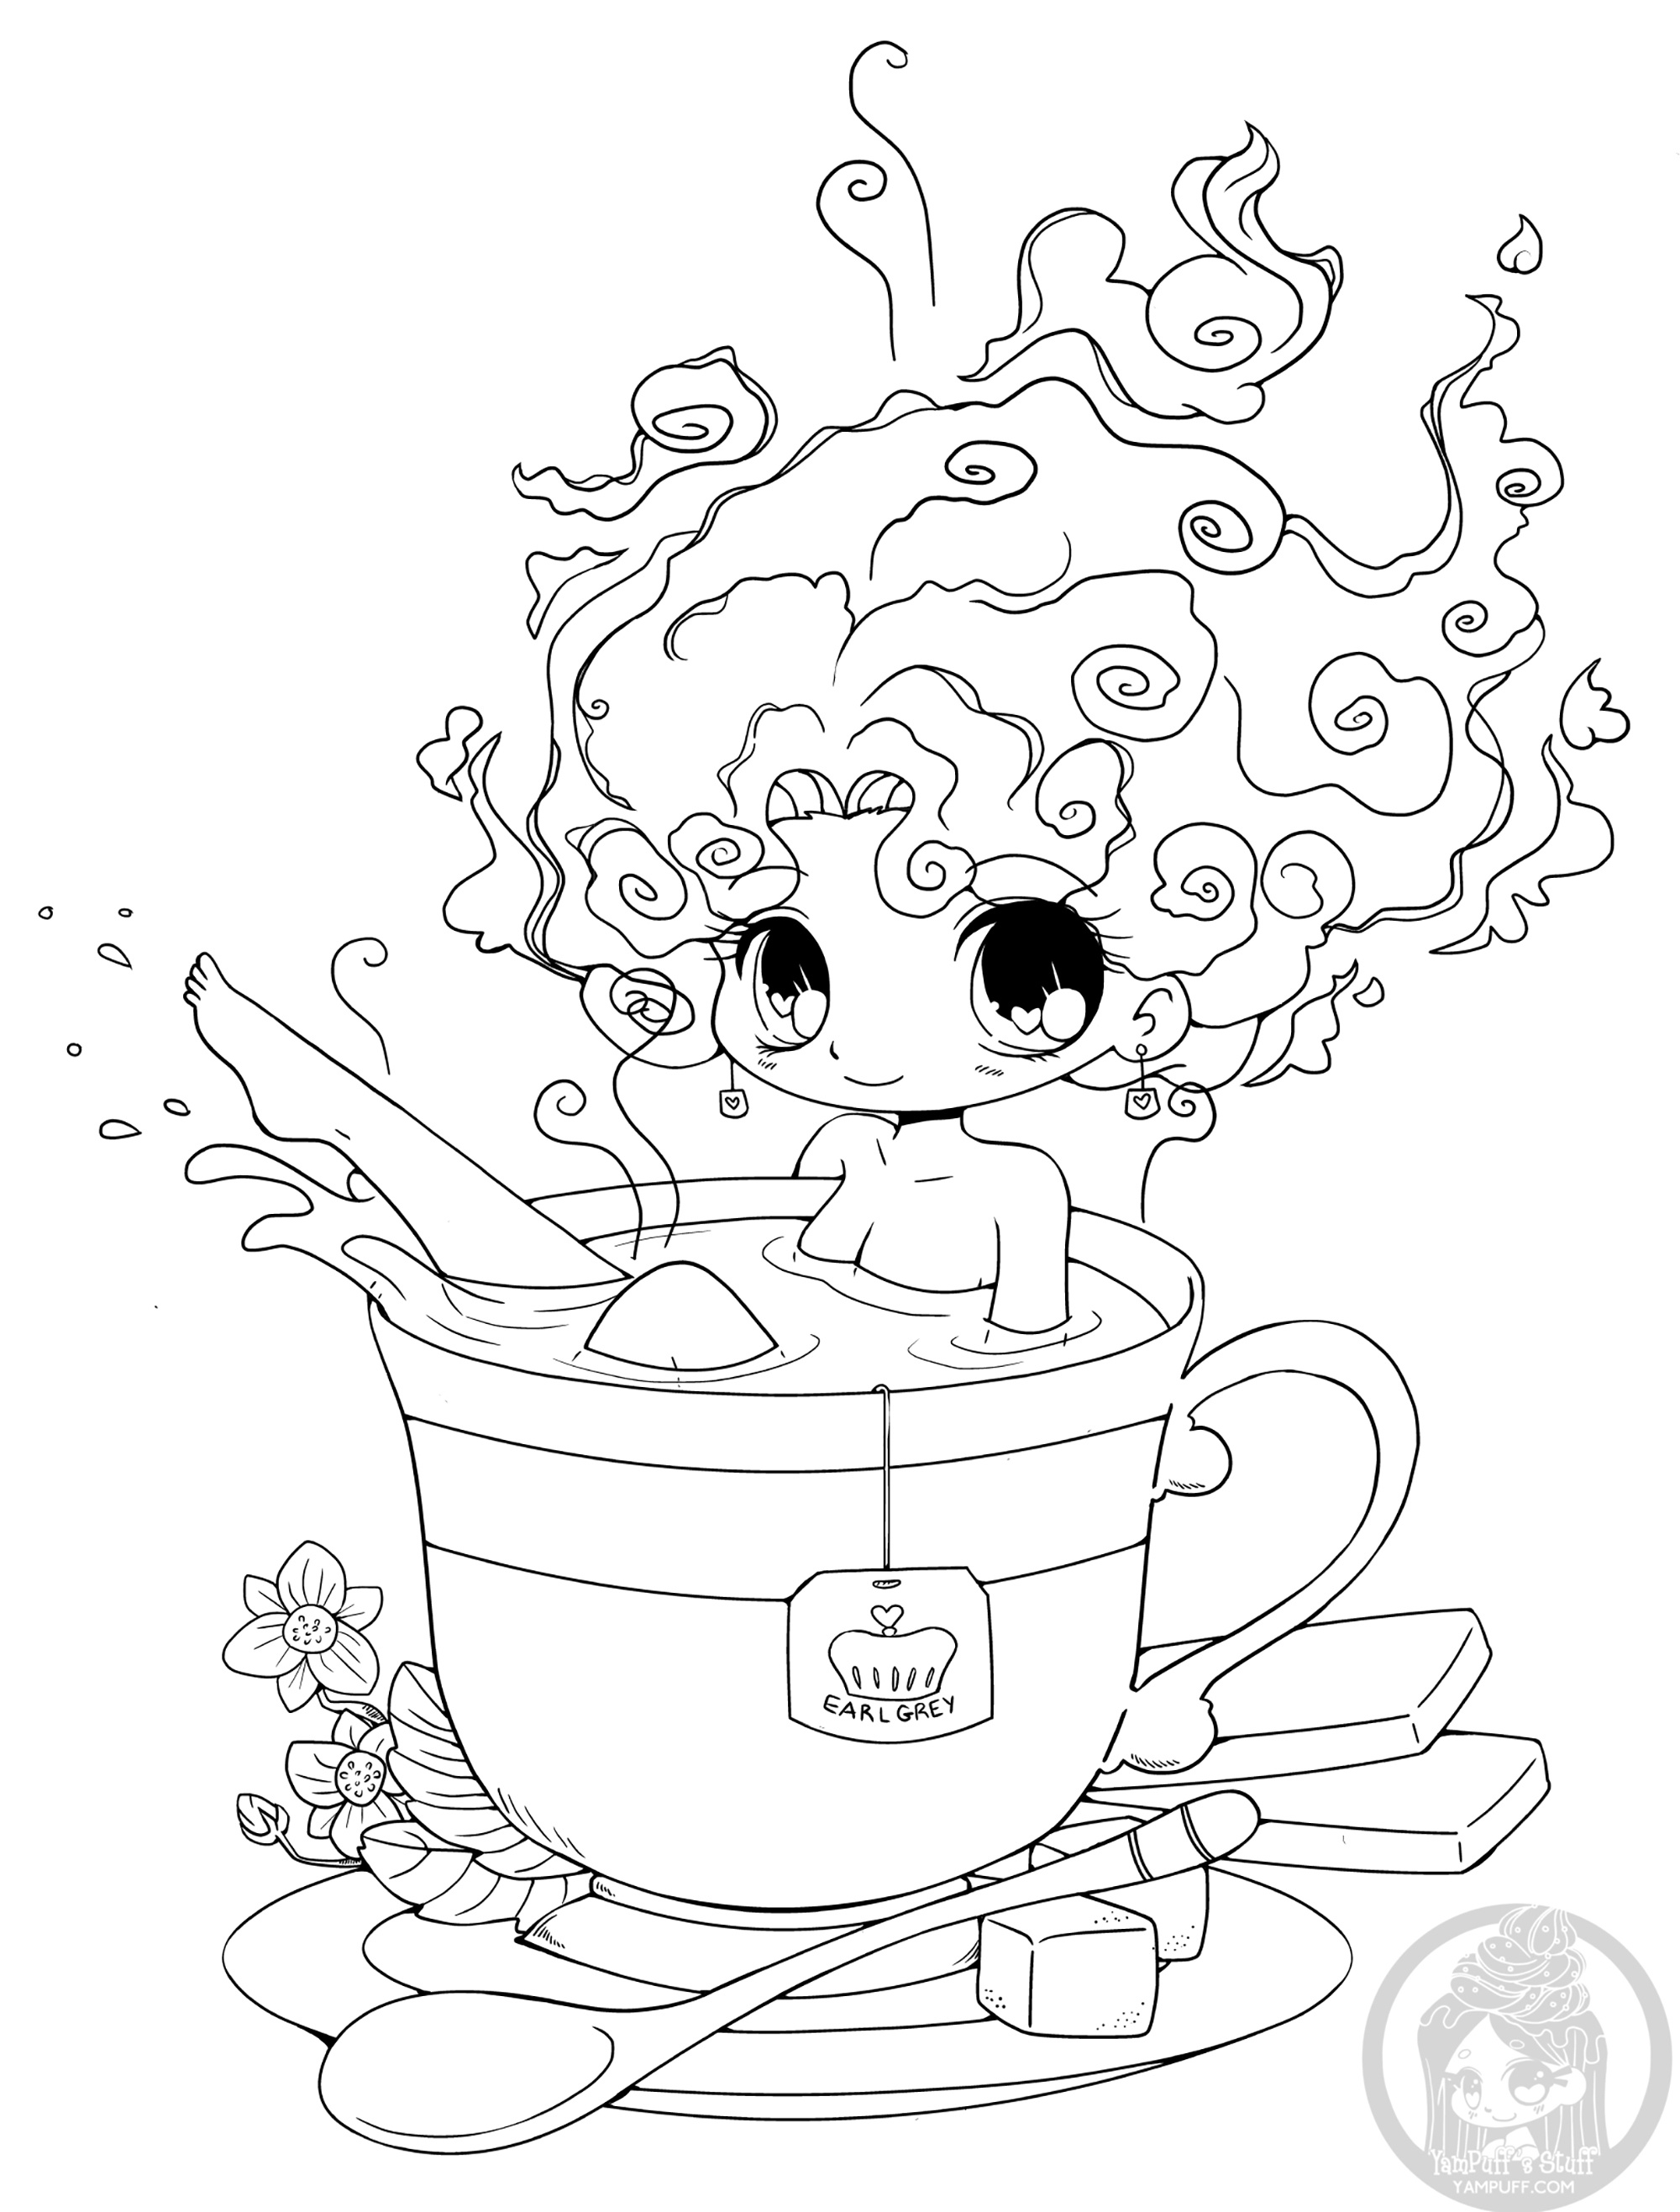 Kawaii to print - Kawaii Kids Coloring Pages